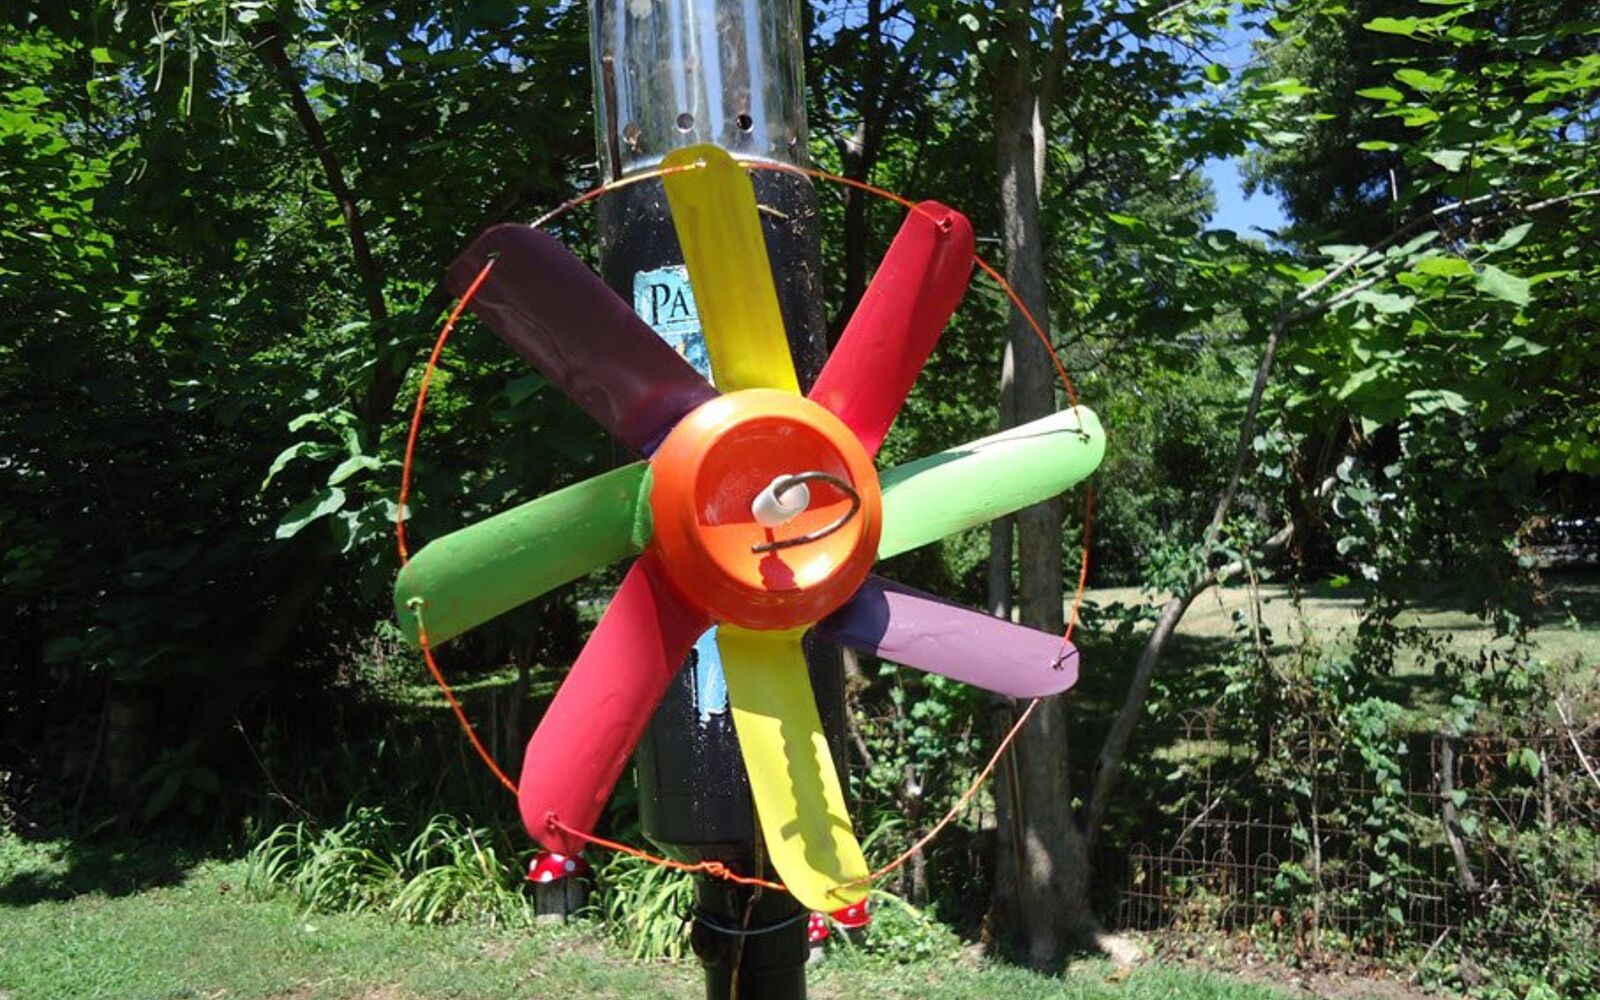 s save your old cans for these 30 home decor ideas, Turn them into colorful wind spinners